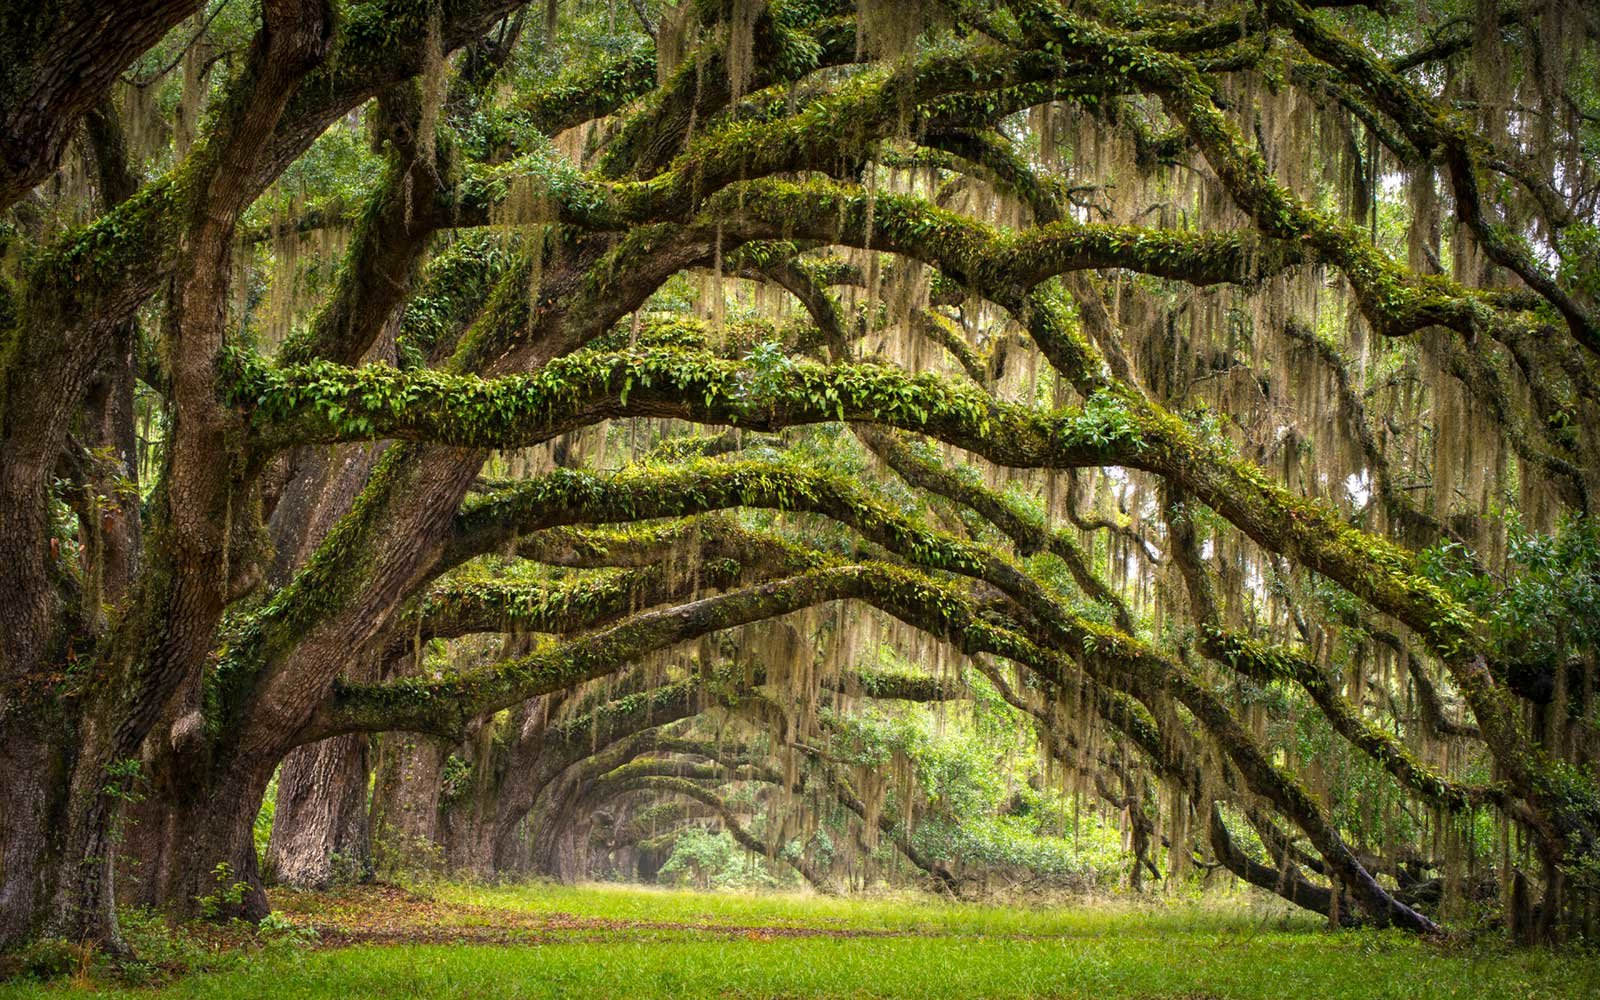 Avenue of Oaks, Charleston, South Carolina